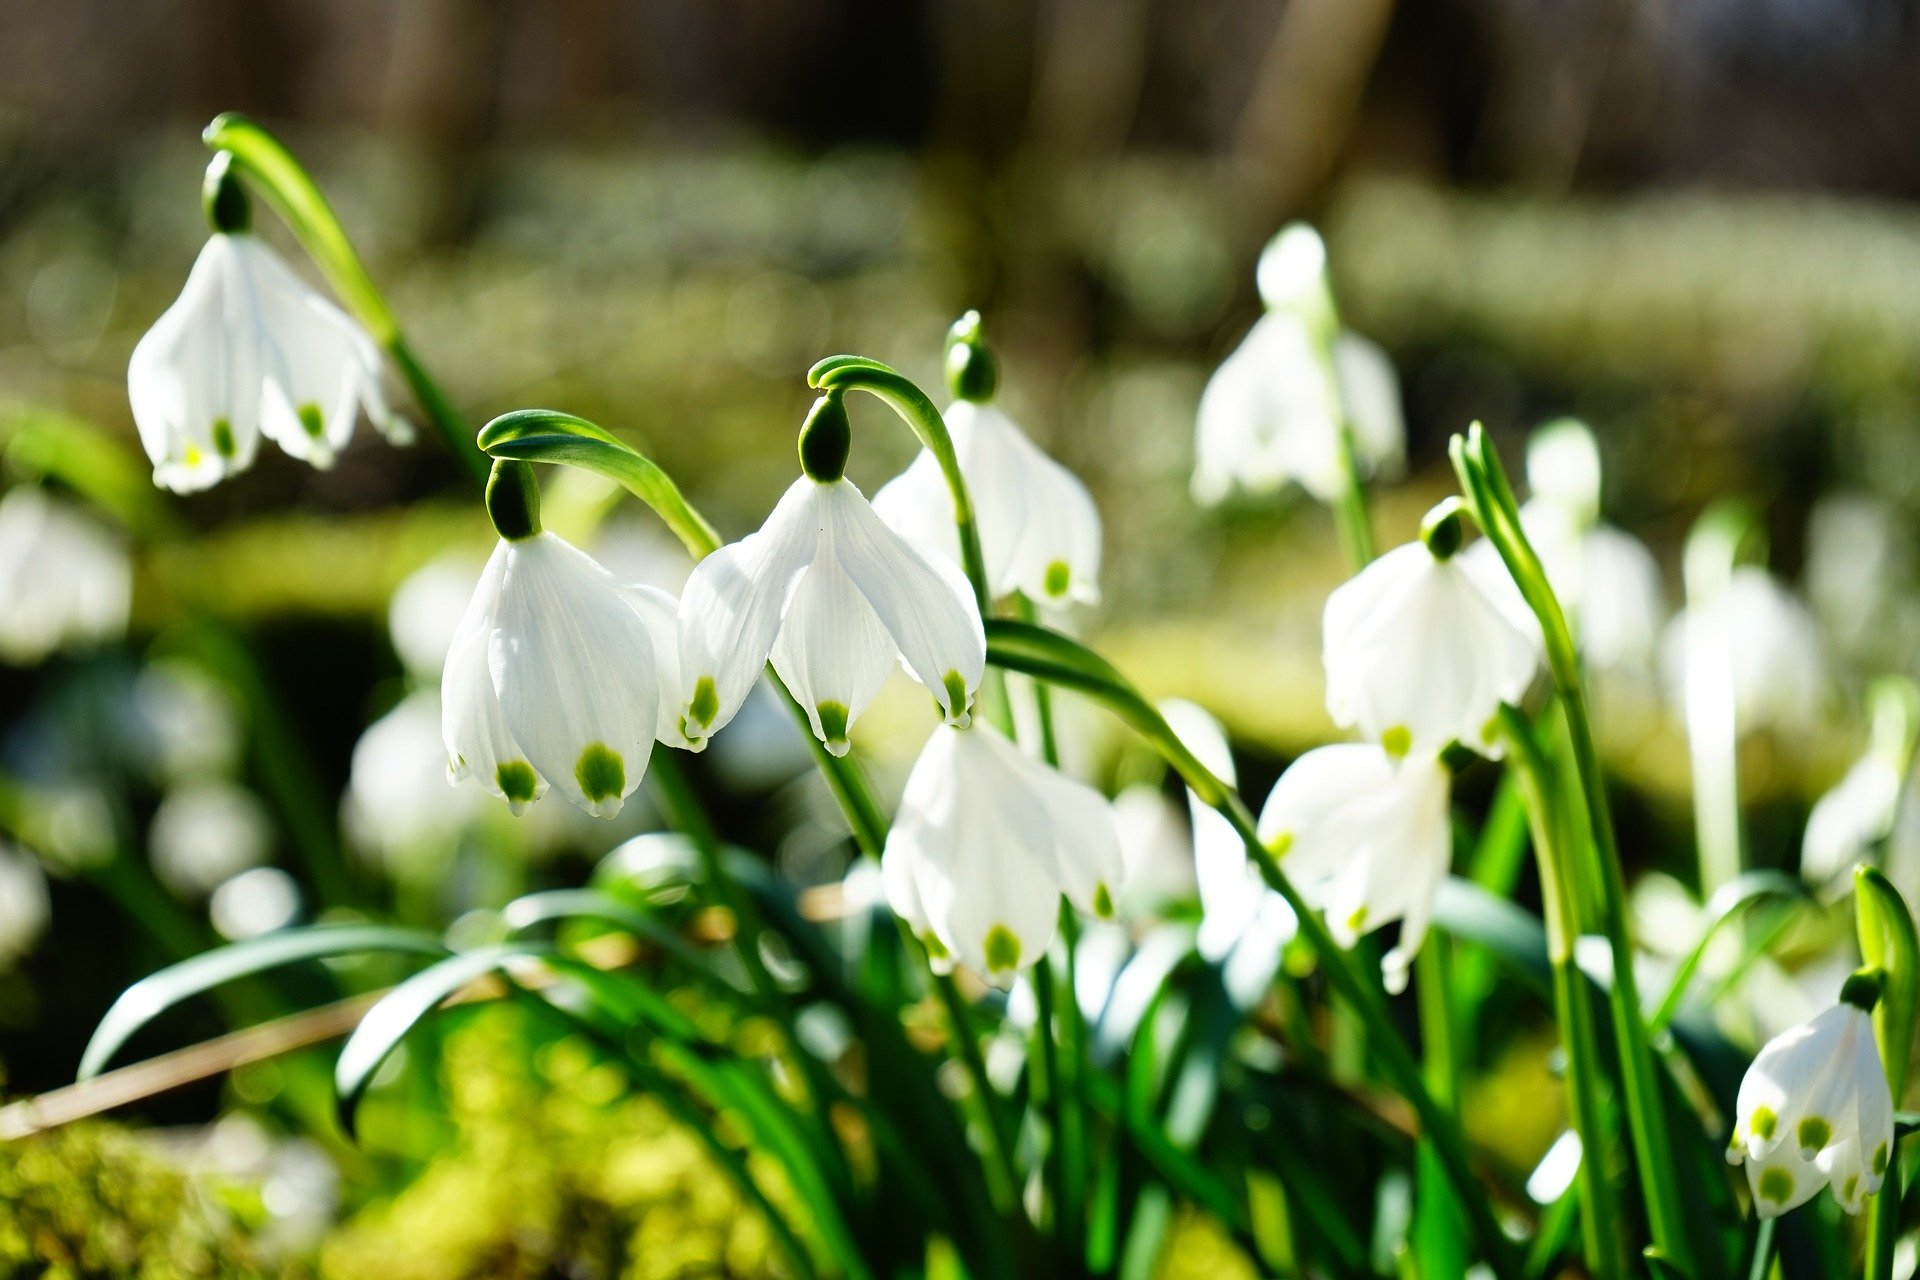 Snowdrop Sundays at Pencarrow House